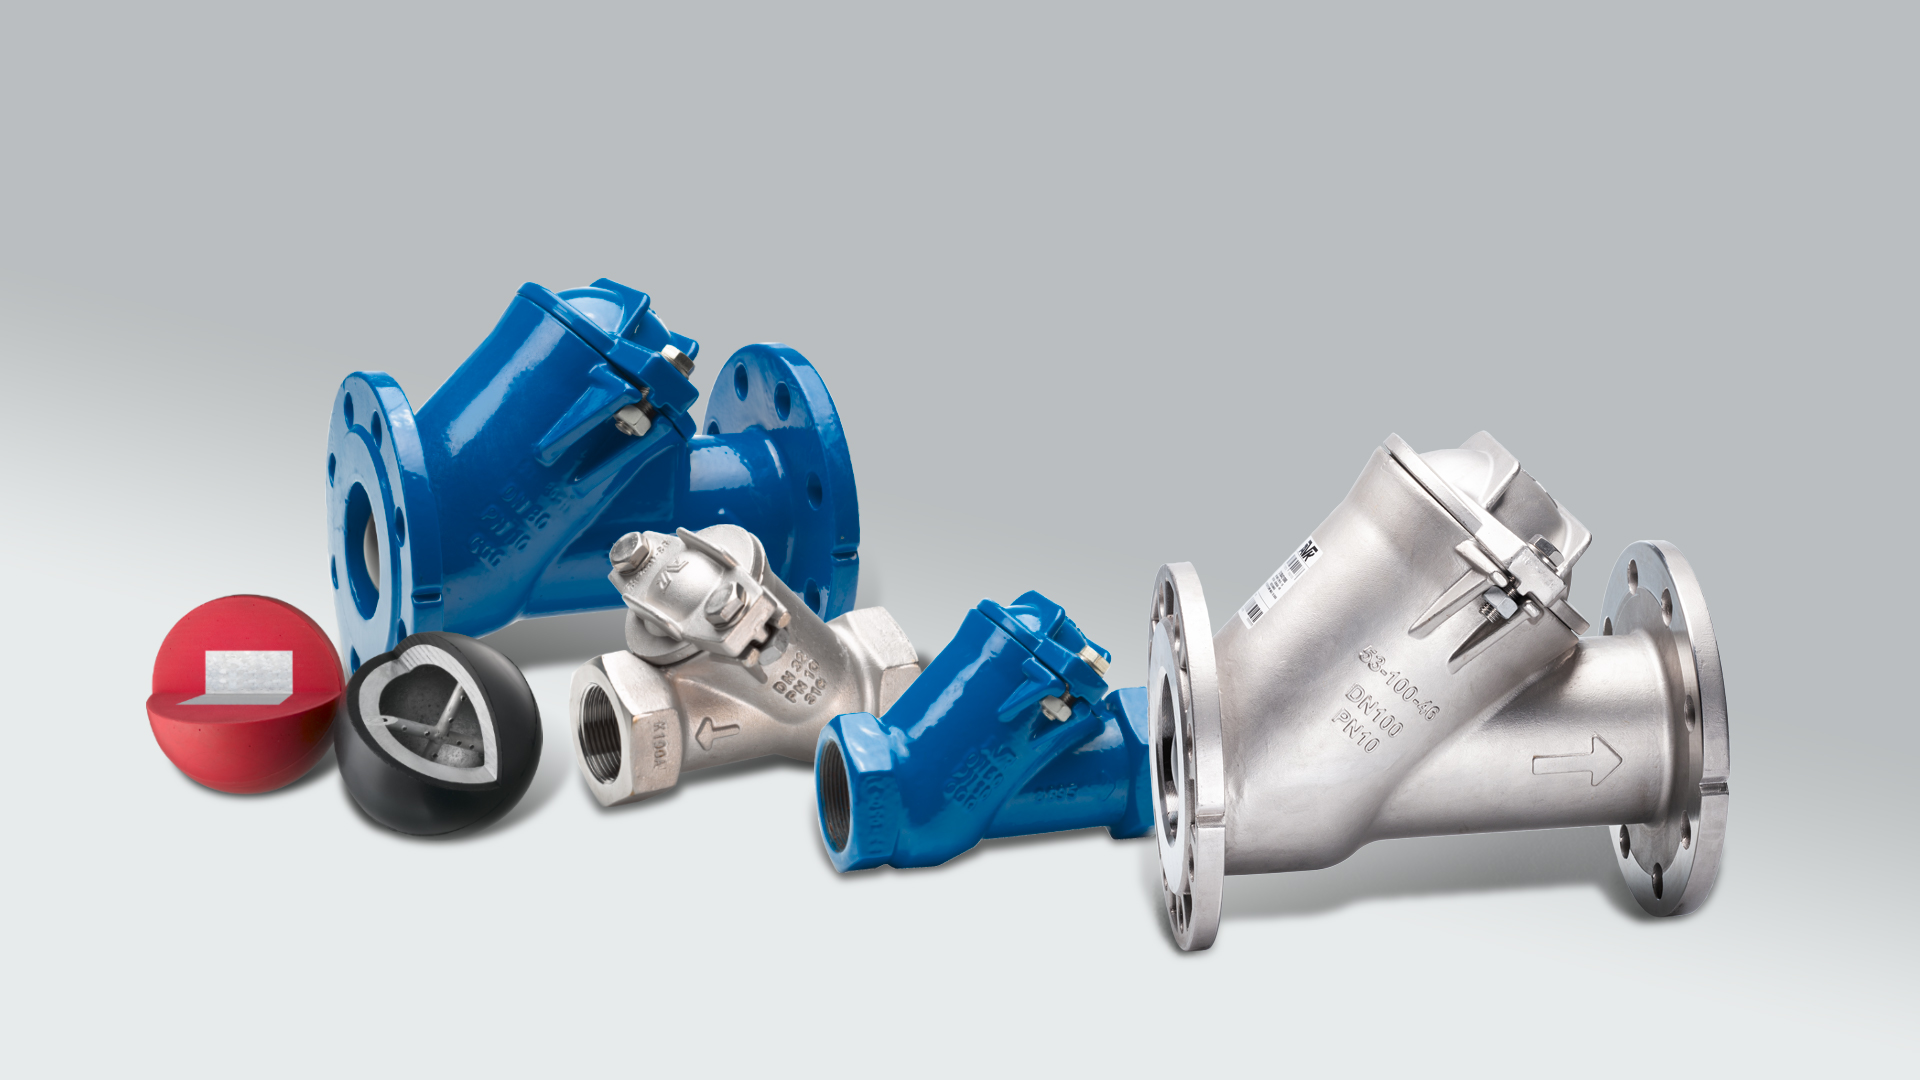 AVK series 53 ball check valves